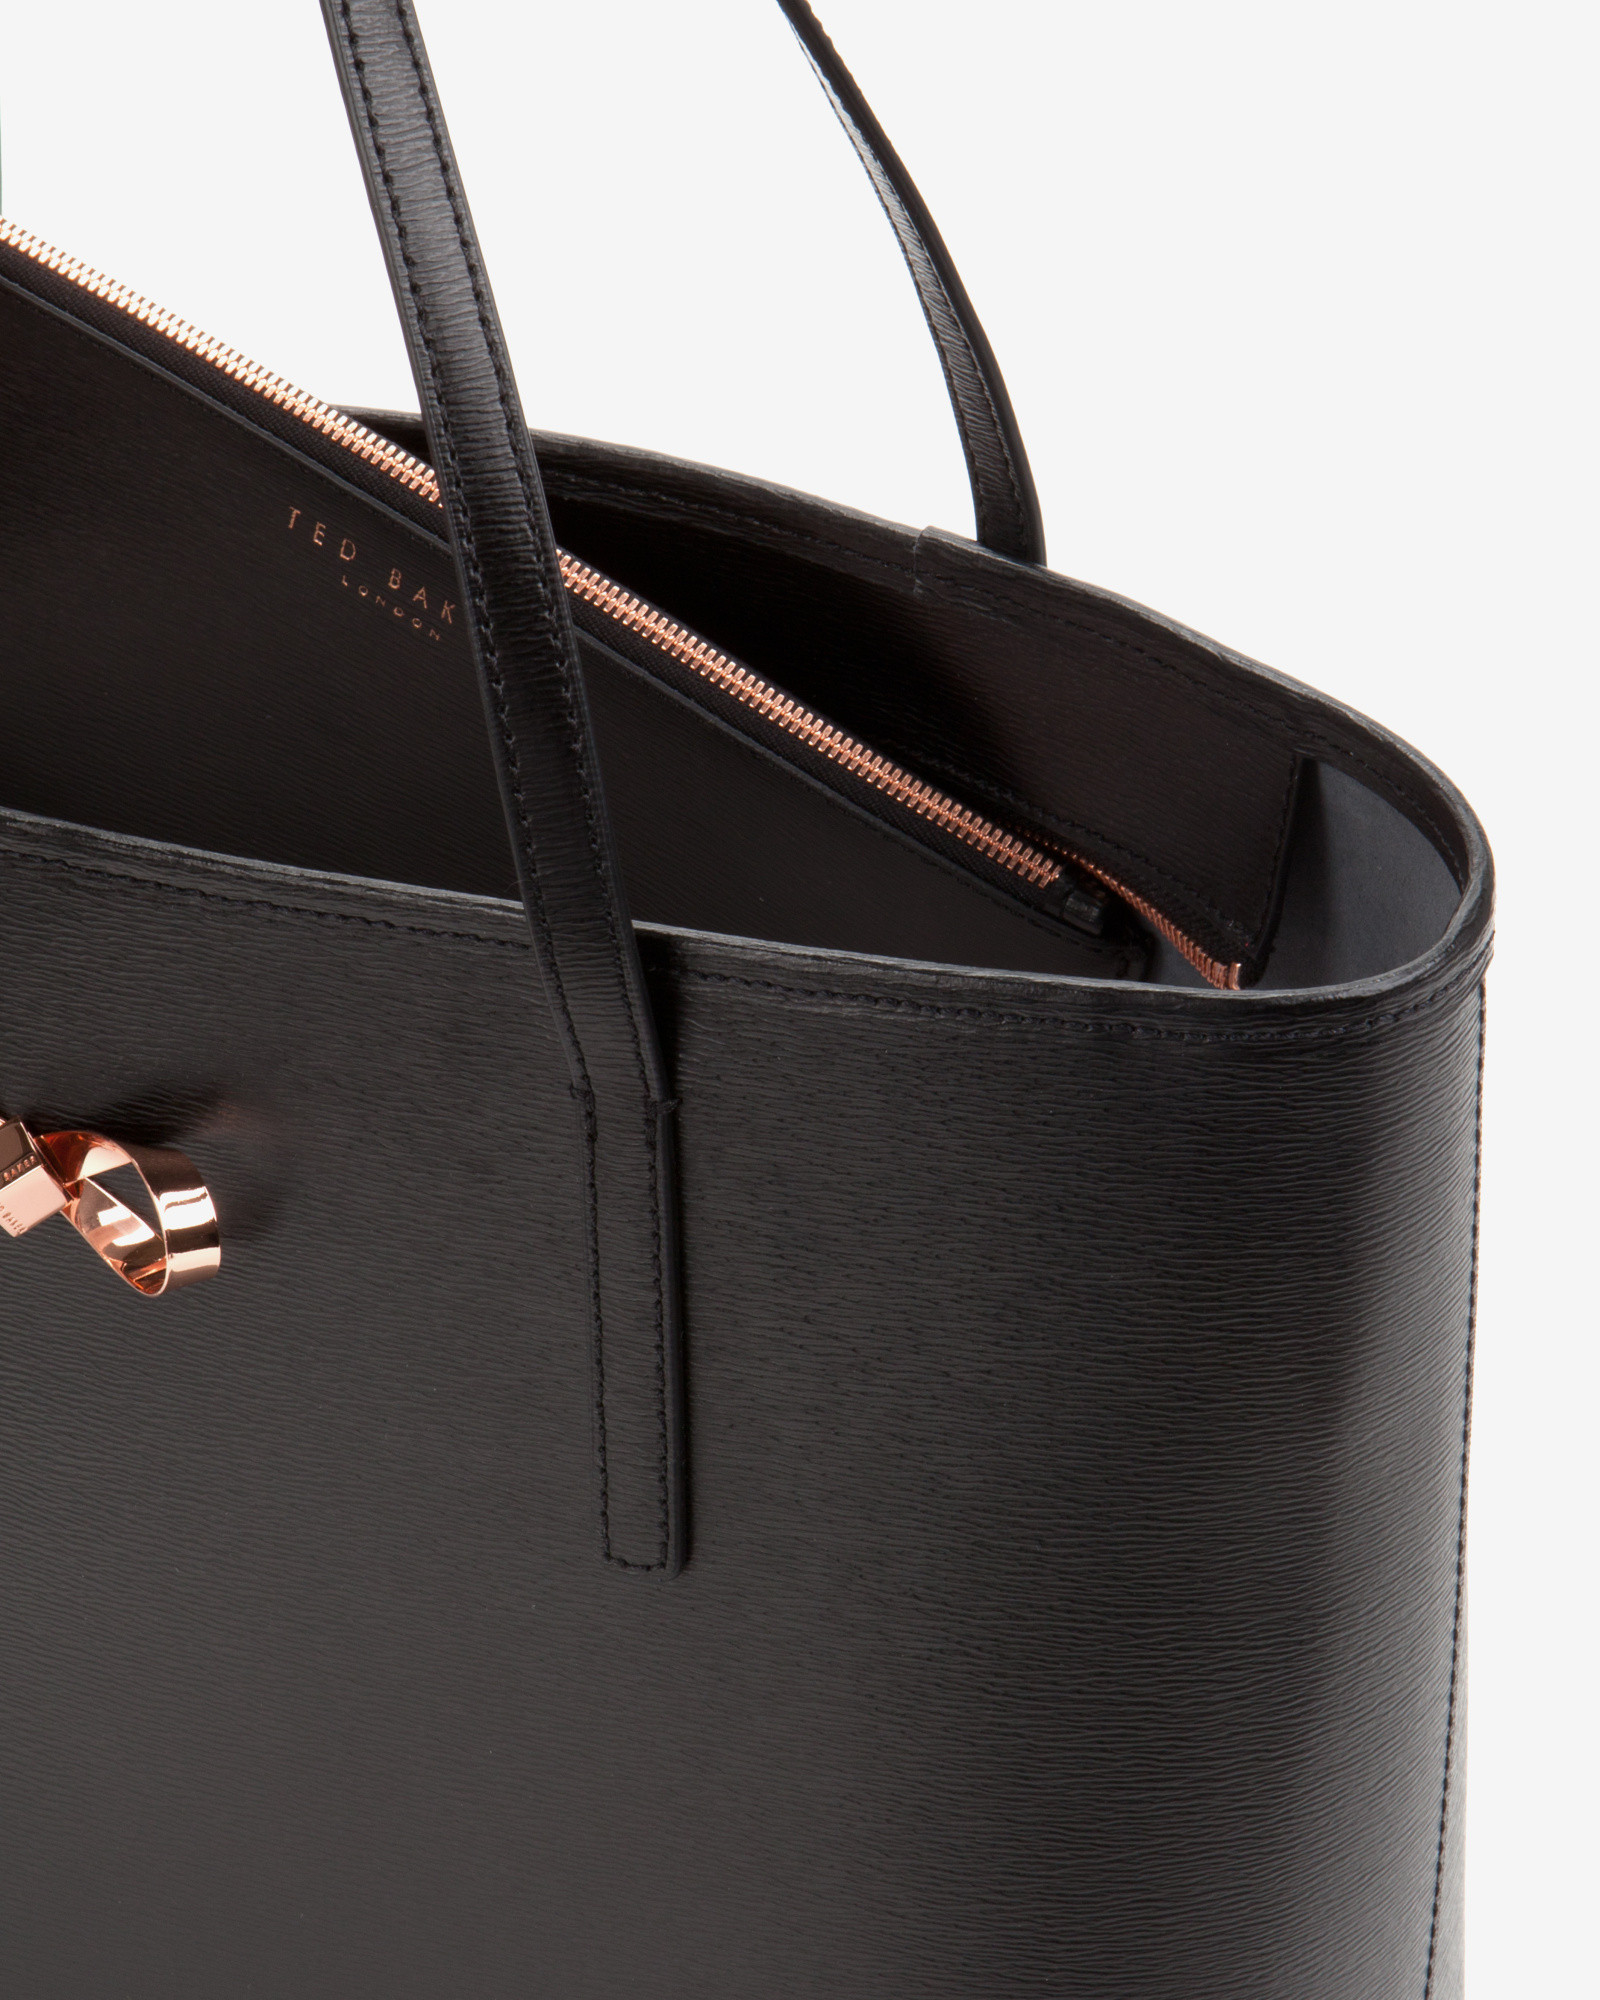 Ted Baker Purse Black And Rose Gold - Best